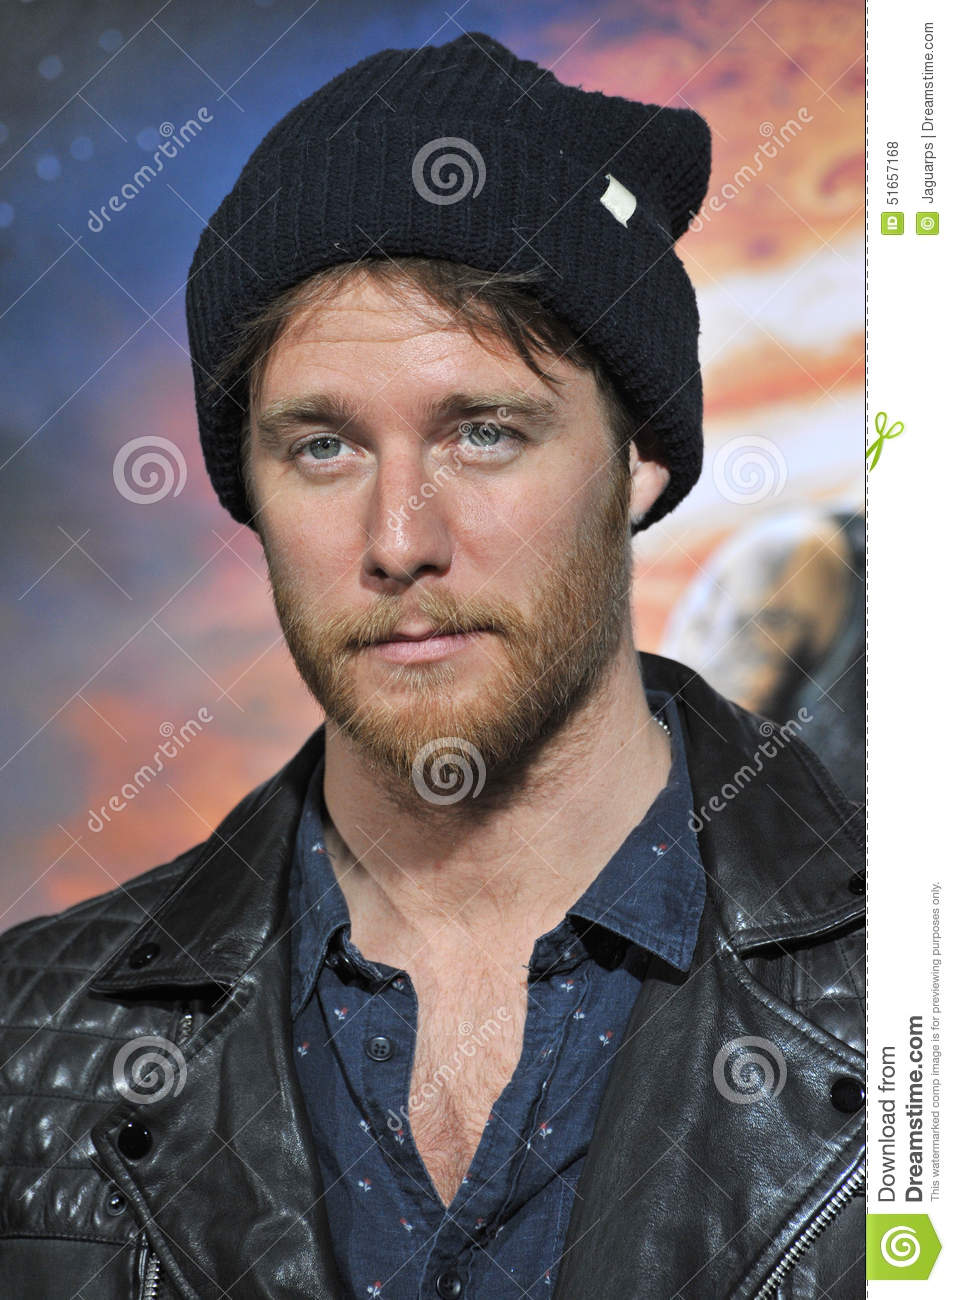 jake mcdorman wdwjake mcdorman wife, jake mcdorman american sniper, jake mcdorman aquamarine, jake mcdorman limitless, jake mcdorman instagram, jake mcdorman age, jake mcdorman net worth, jake mcdorman height, jake mcdorman twitter, jake mcdorman analeigh tipton, jake mcdorman bring it on, jake mcdorman bradley cooper, jake mcdorman wiki, jake mcdorman images, jake mcdorman vine, jake mcdorman wdw, jake mcdorman house, jake mcdorman bracelet, jake mcdorman teeth, jake mcdorman shoe size